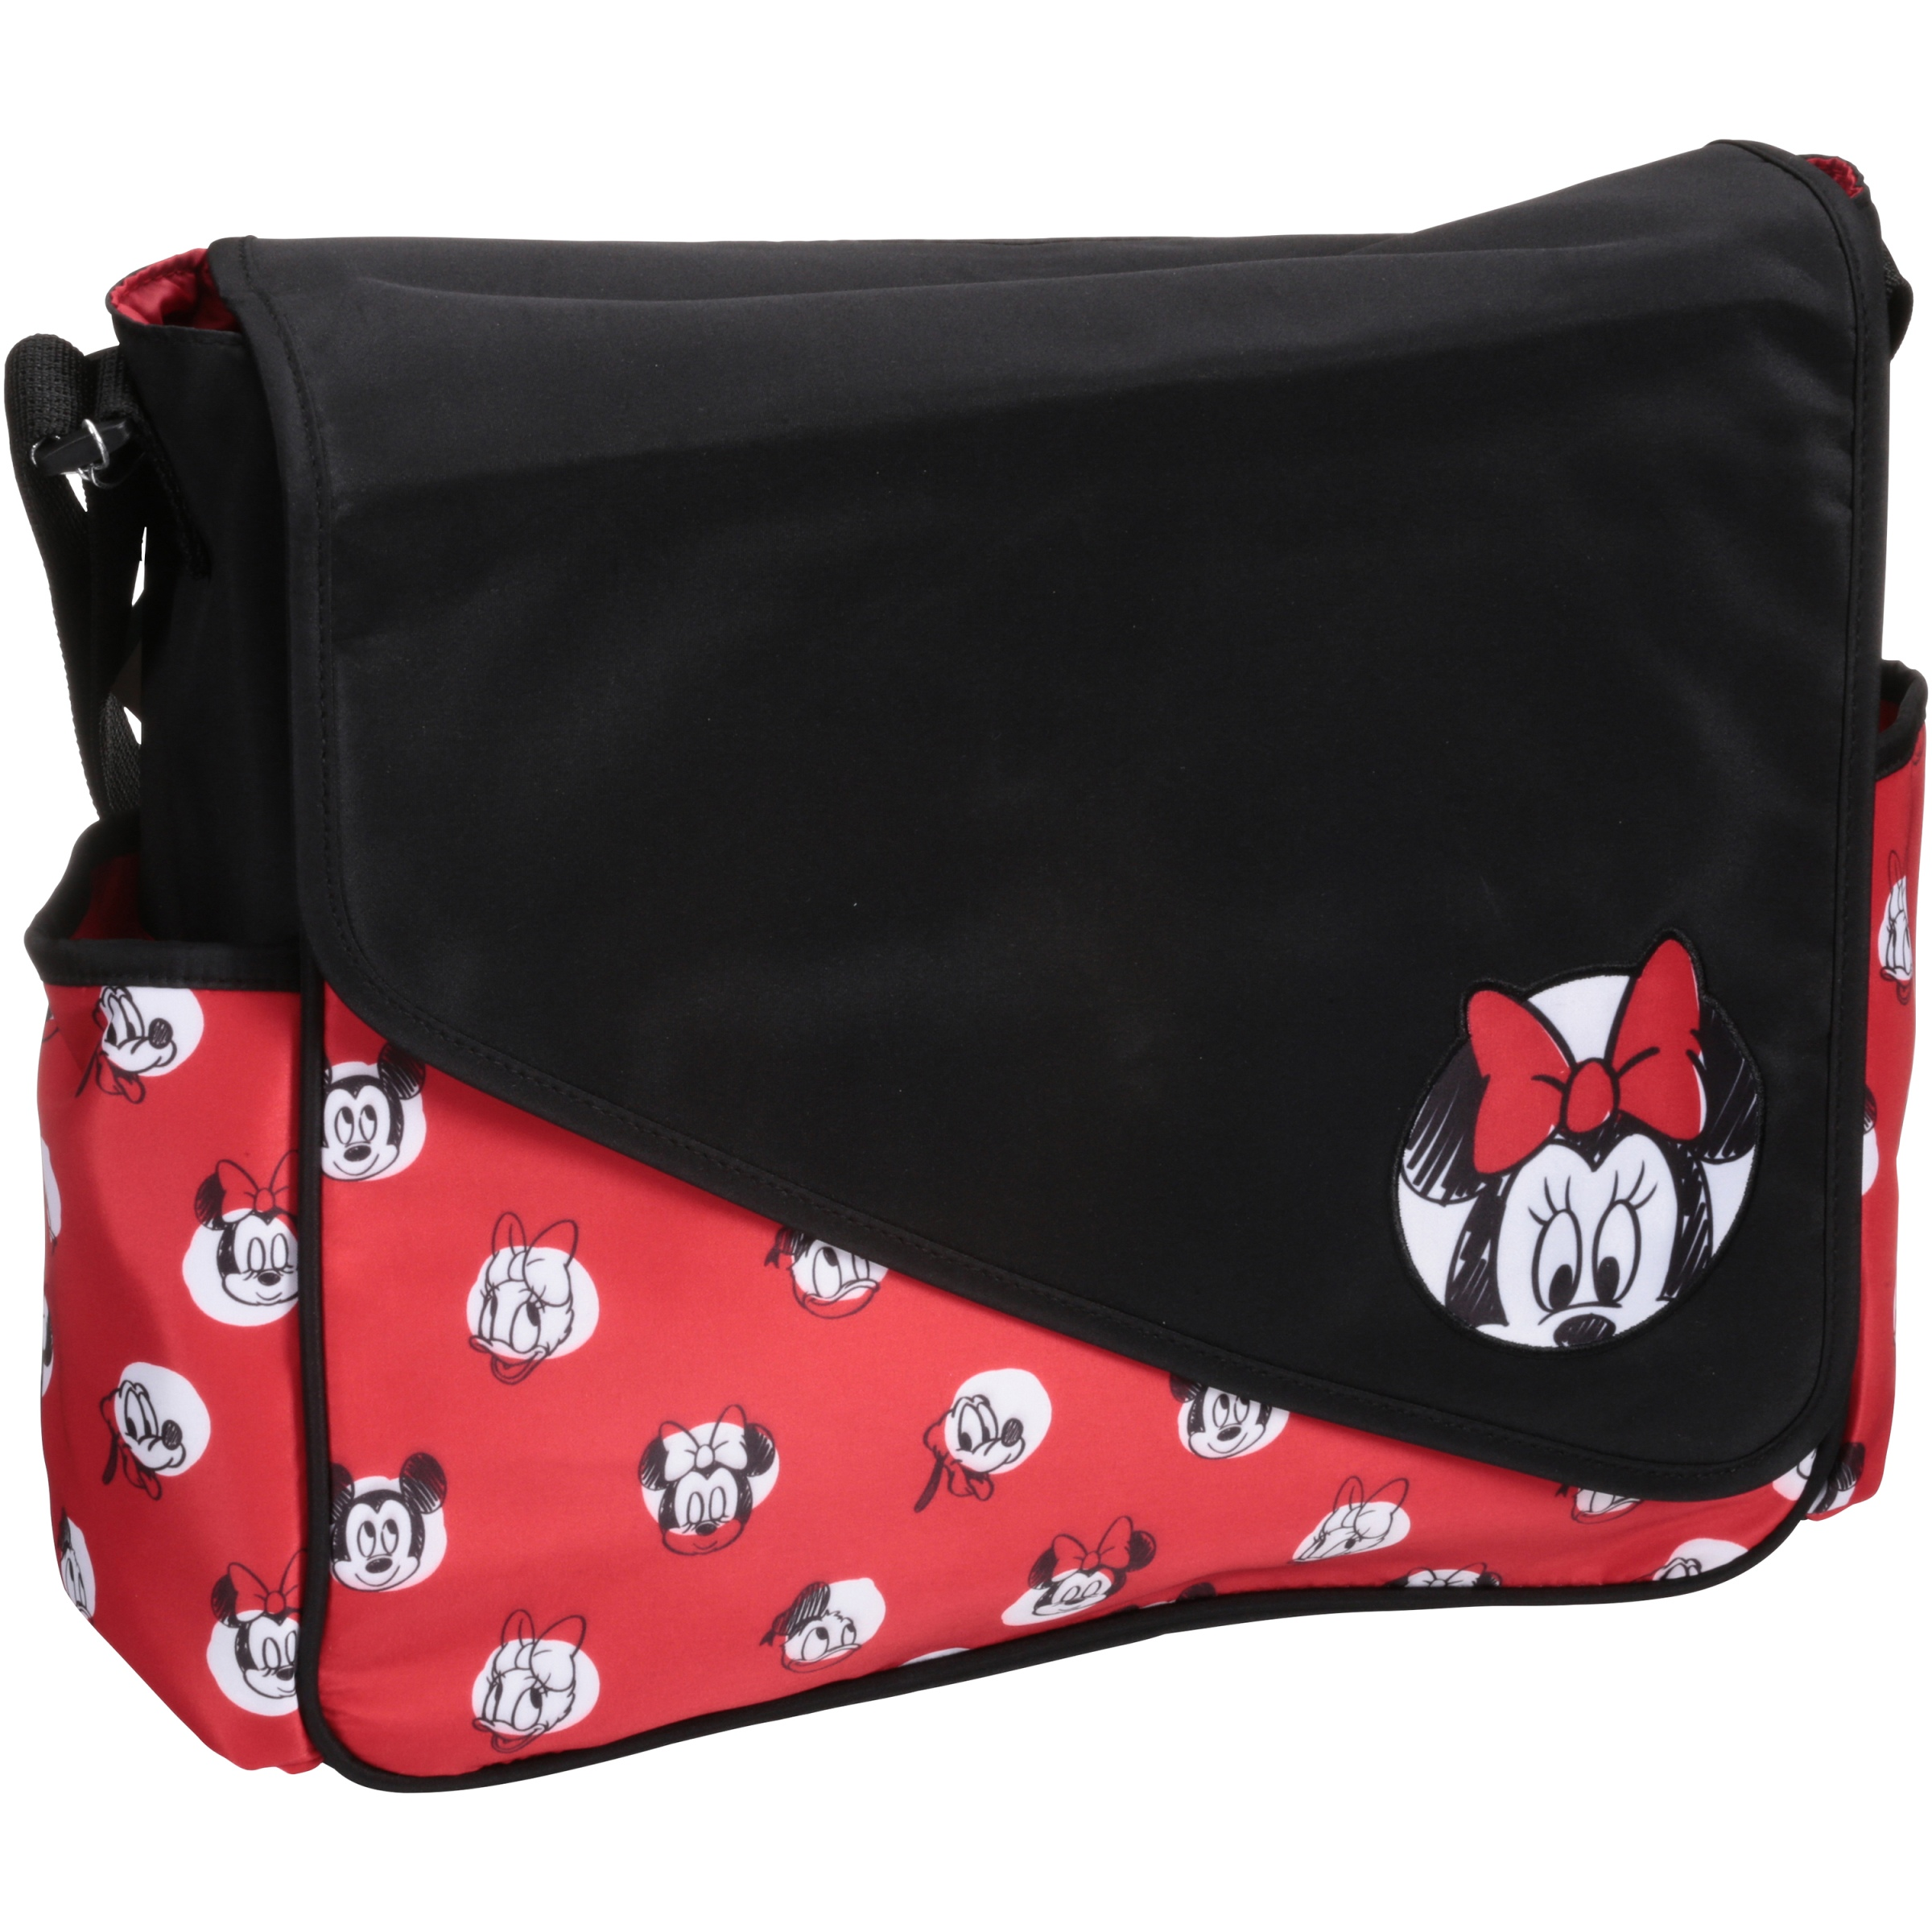 Disney Minnie Mouse Sketch Flap Messenger Diaper Bag, Red by Disney